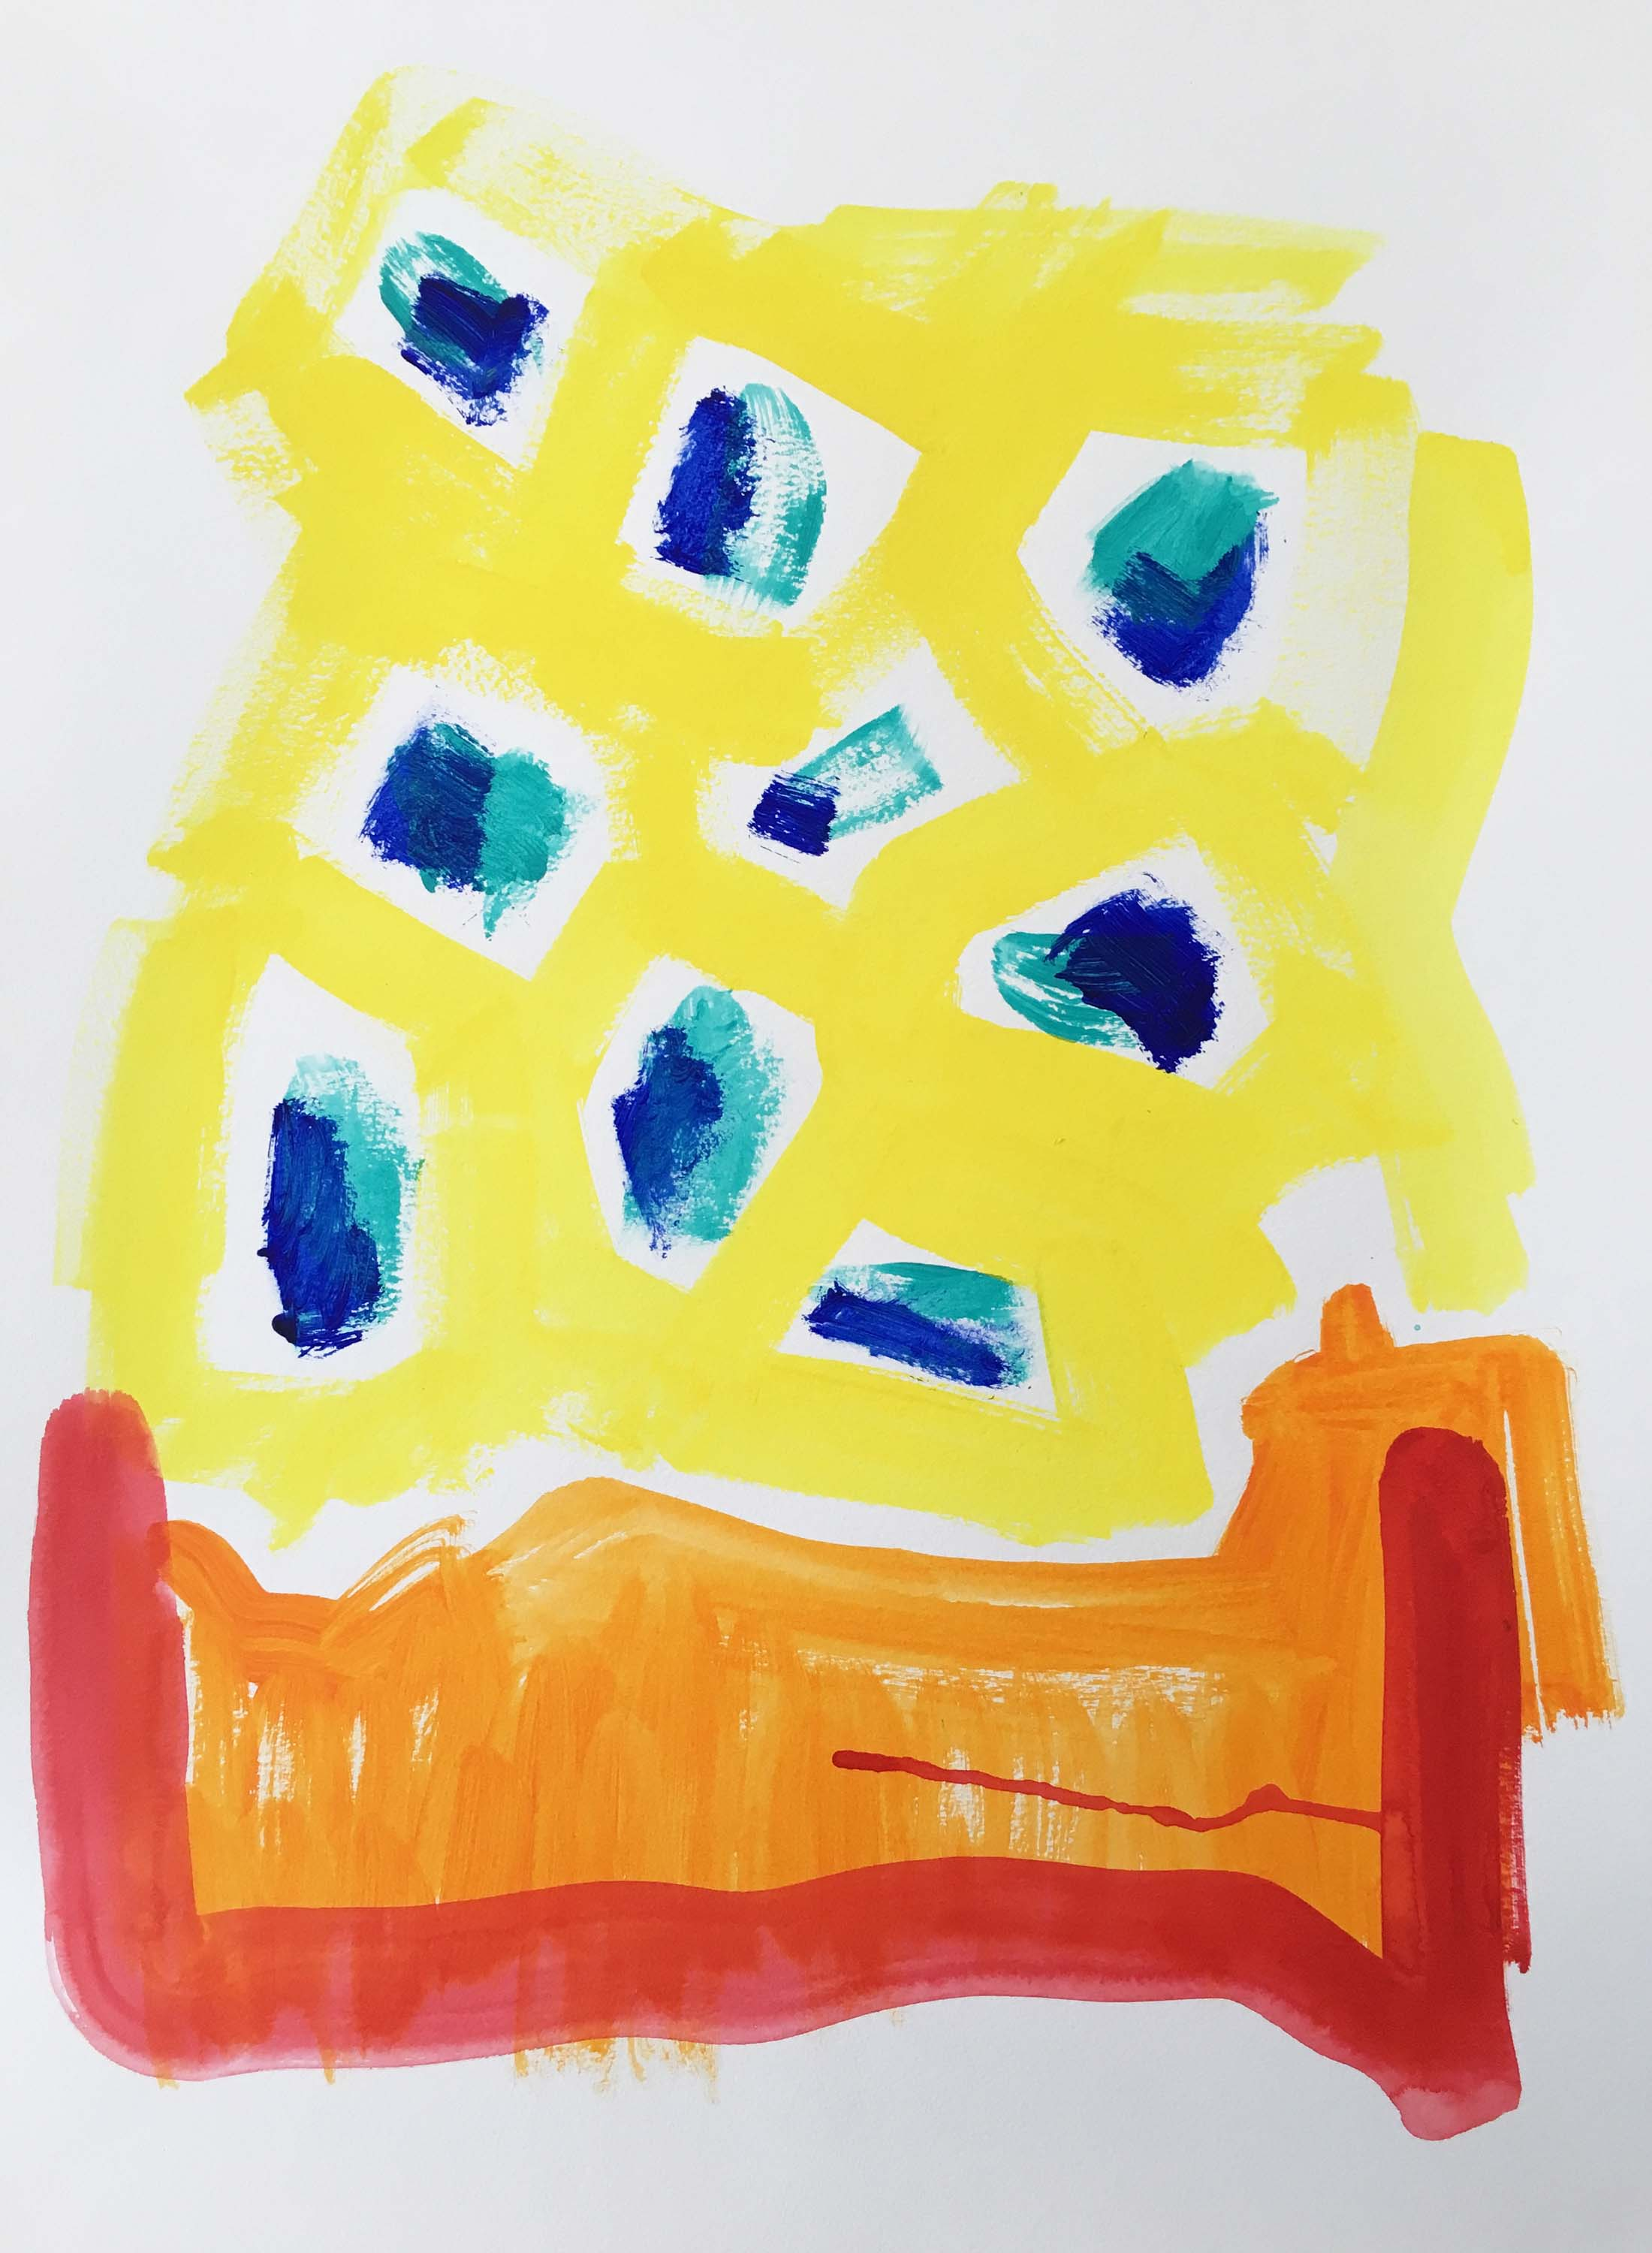 Splashes of Summer, Original Painting on Paper, $76, Free Shipping